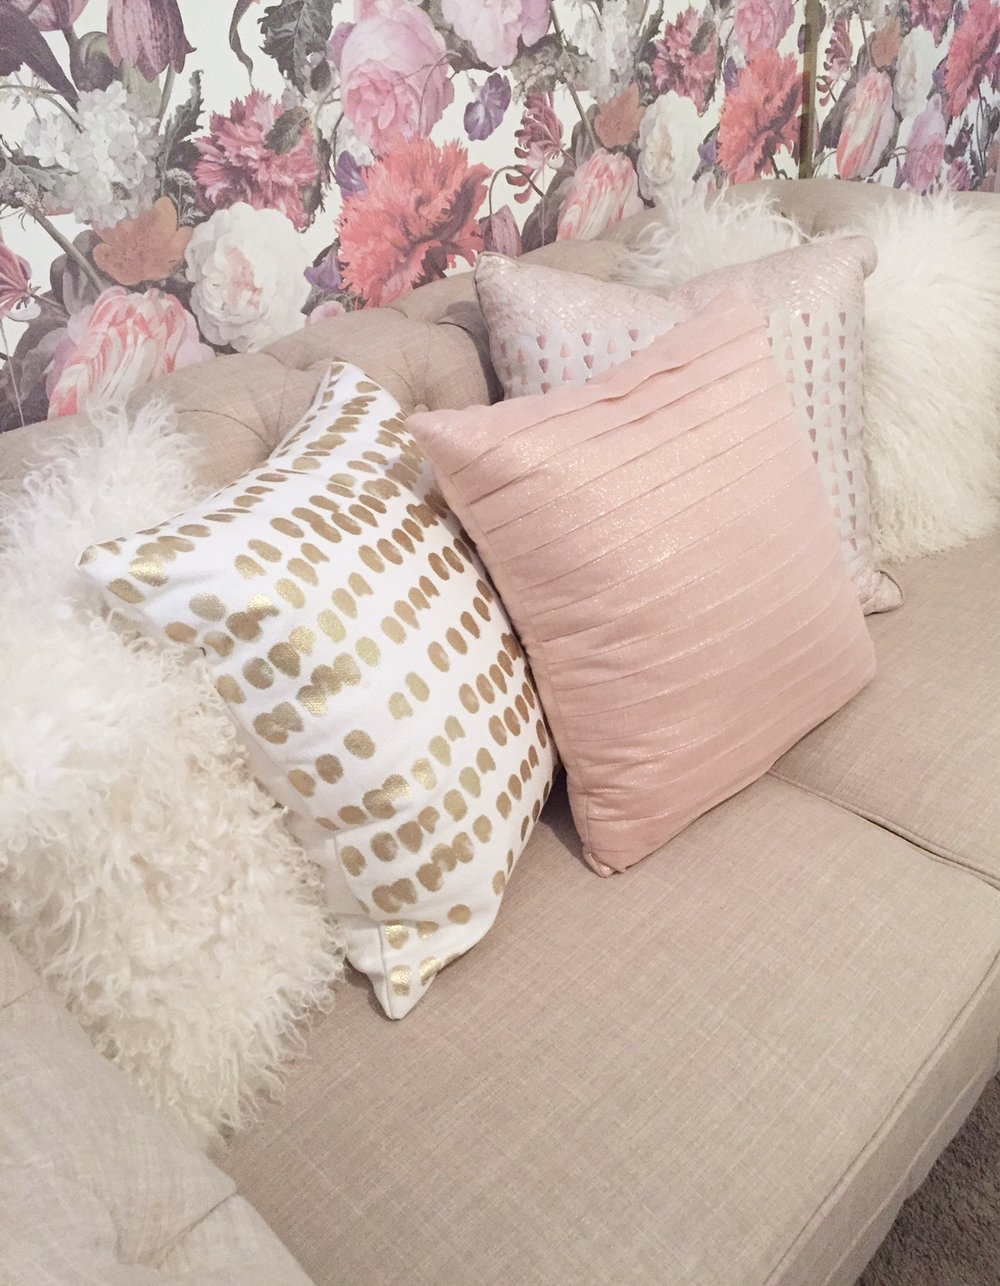 Assorted pillows make the settee the perfect place to sit.